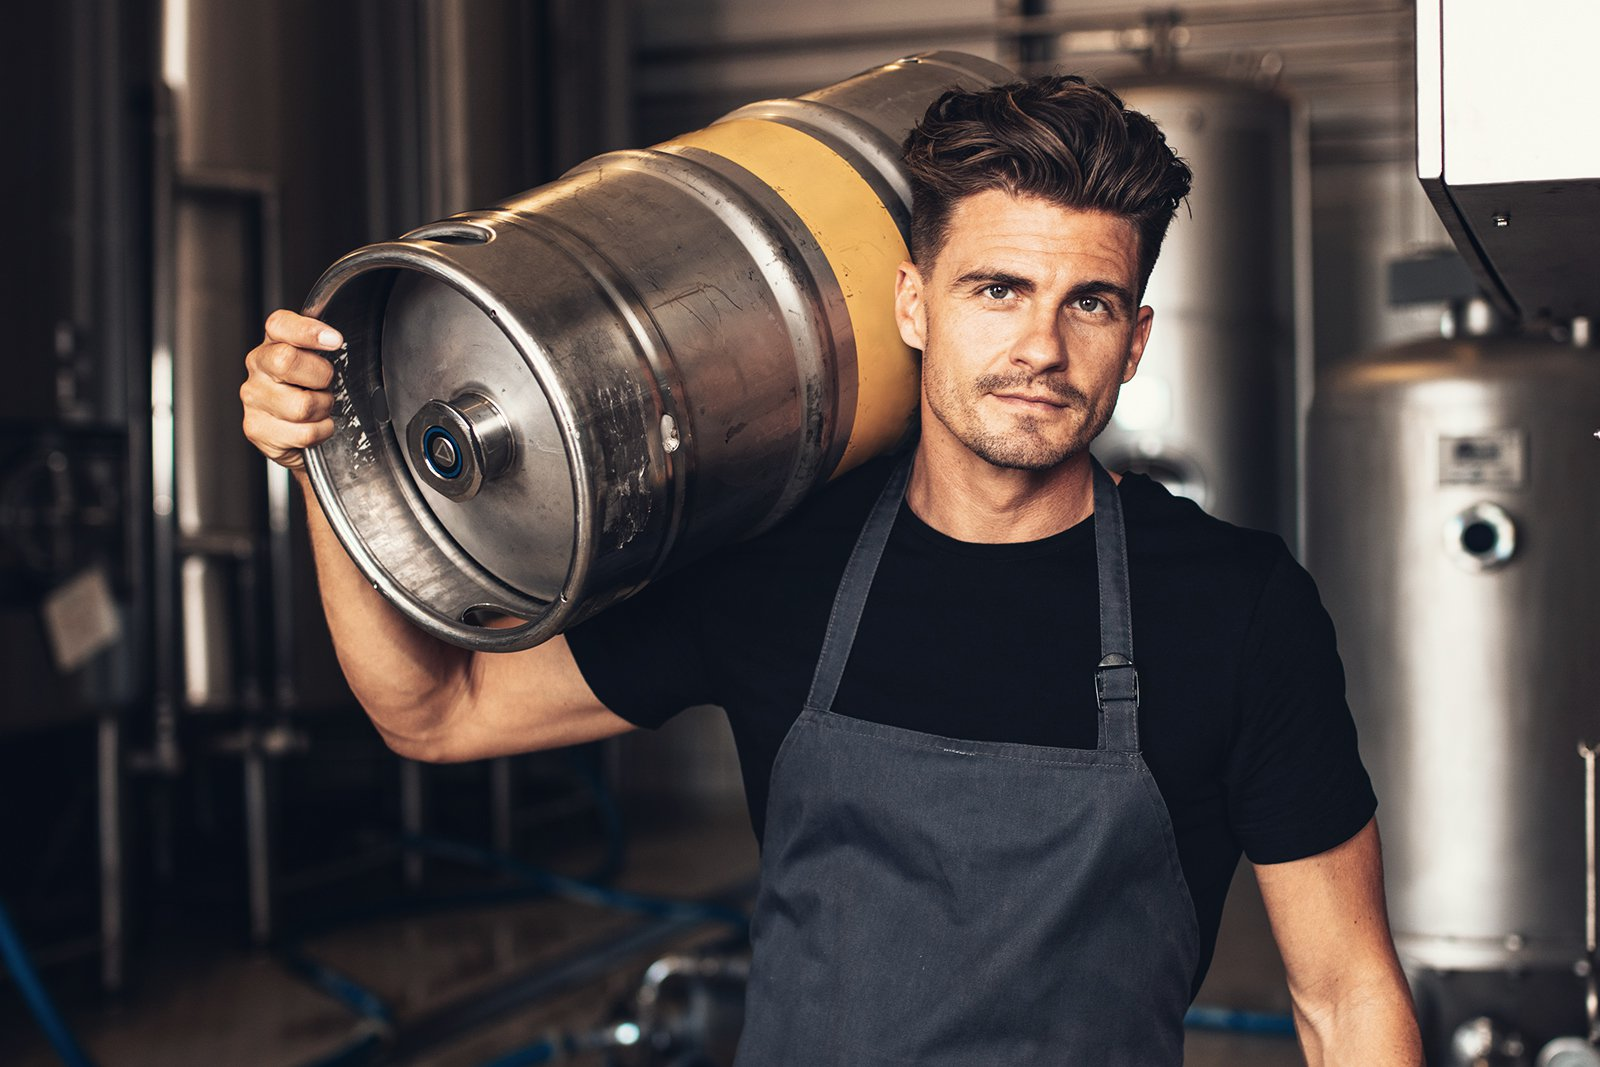 Experts predict the growing popularity of beer